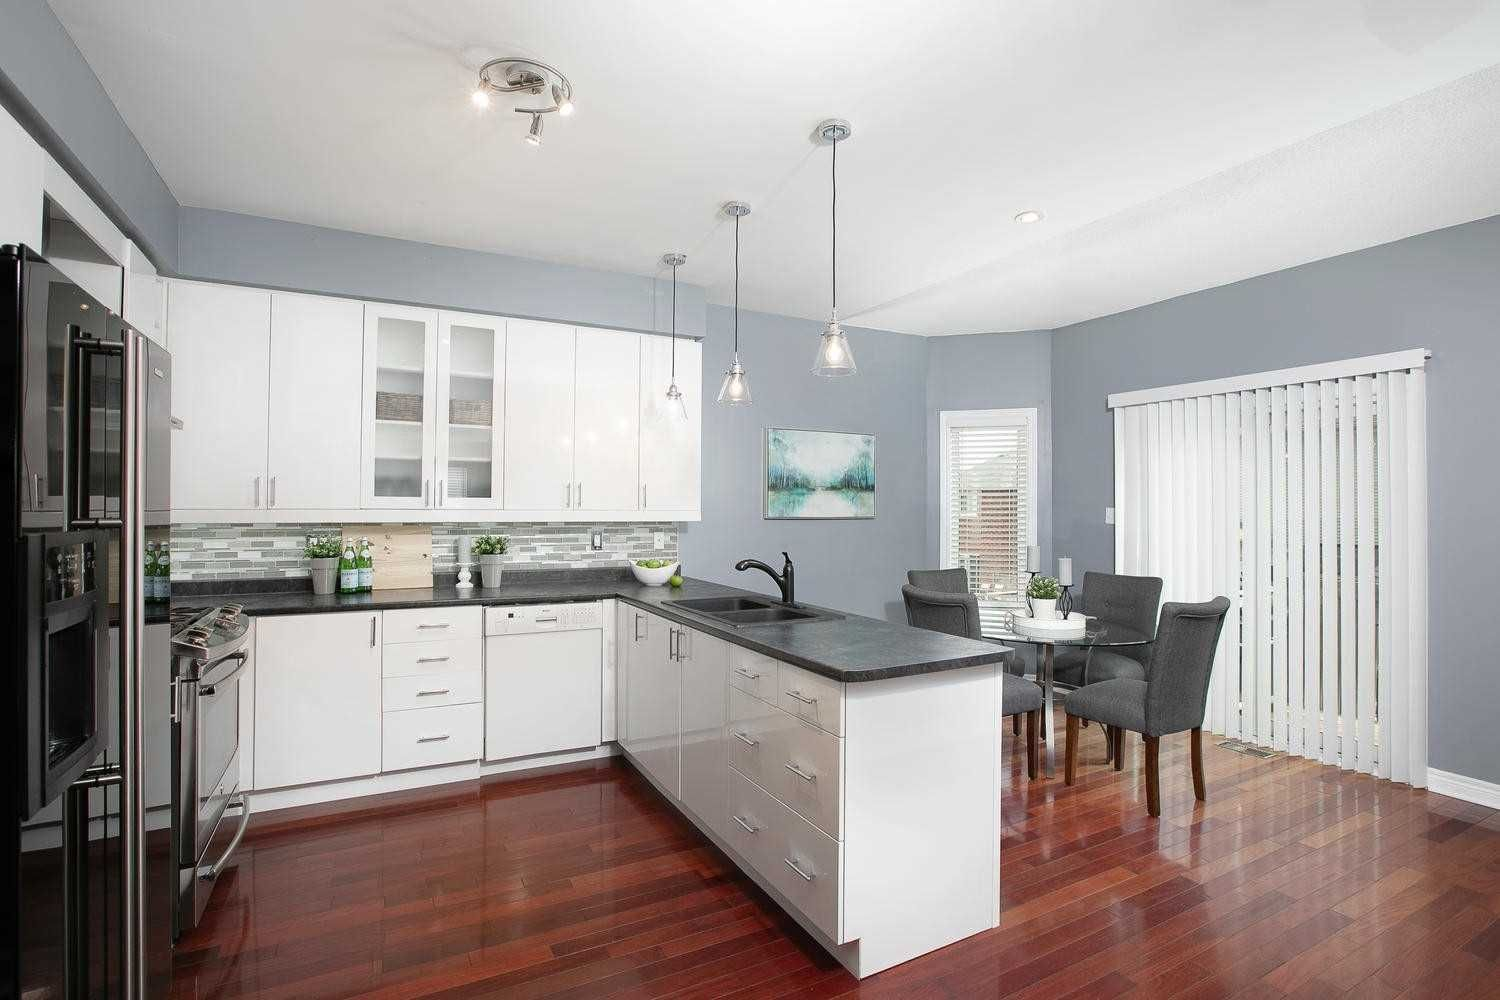 Photo 8: Photos: 51 Ian Drive in Georgina: Keswick South House (2-Storey) for sale : MLS®# N4511369